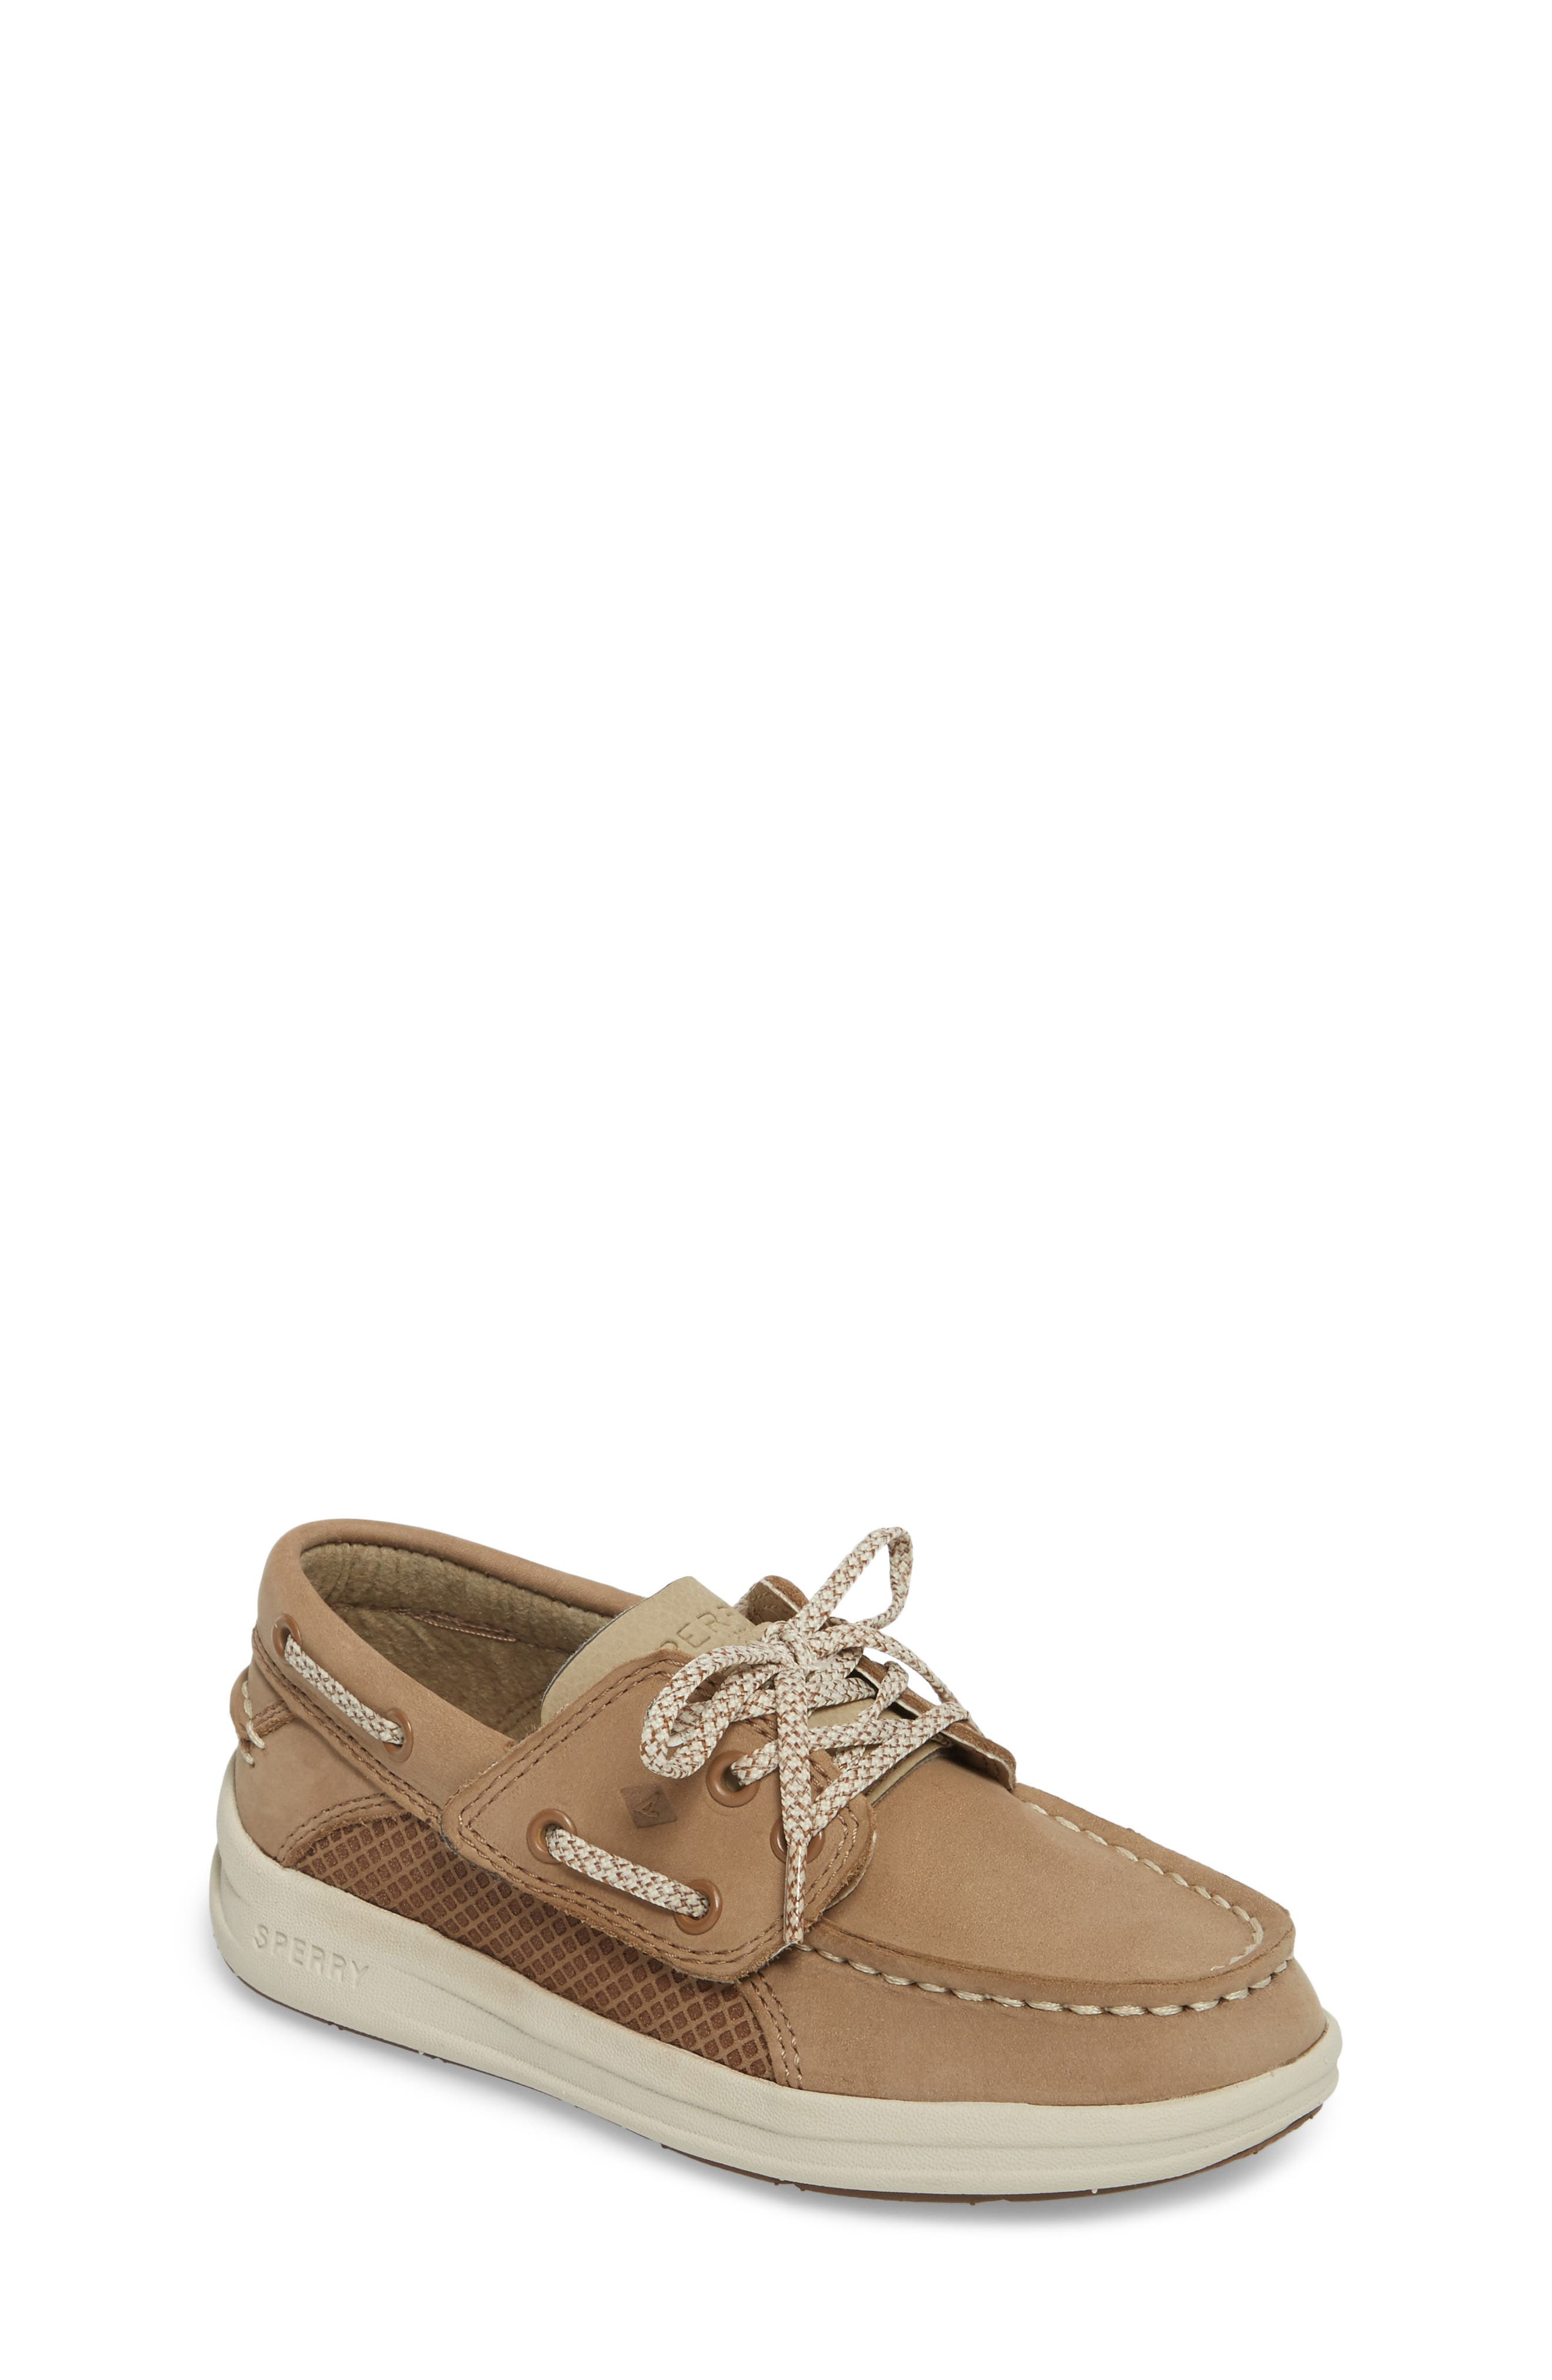 Alternate Image 1 Selected - Sperry Kids Gamefish Boat Shoe (Walker & Toddler)